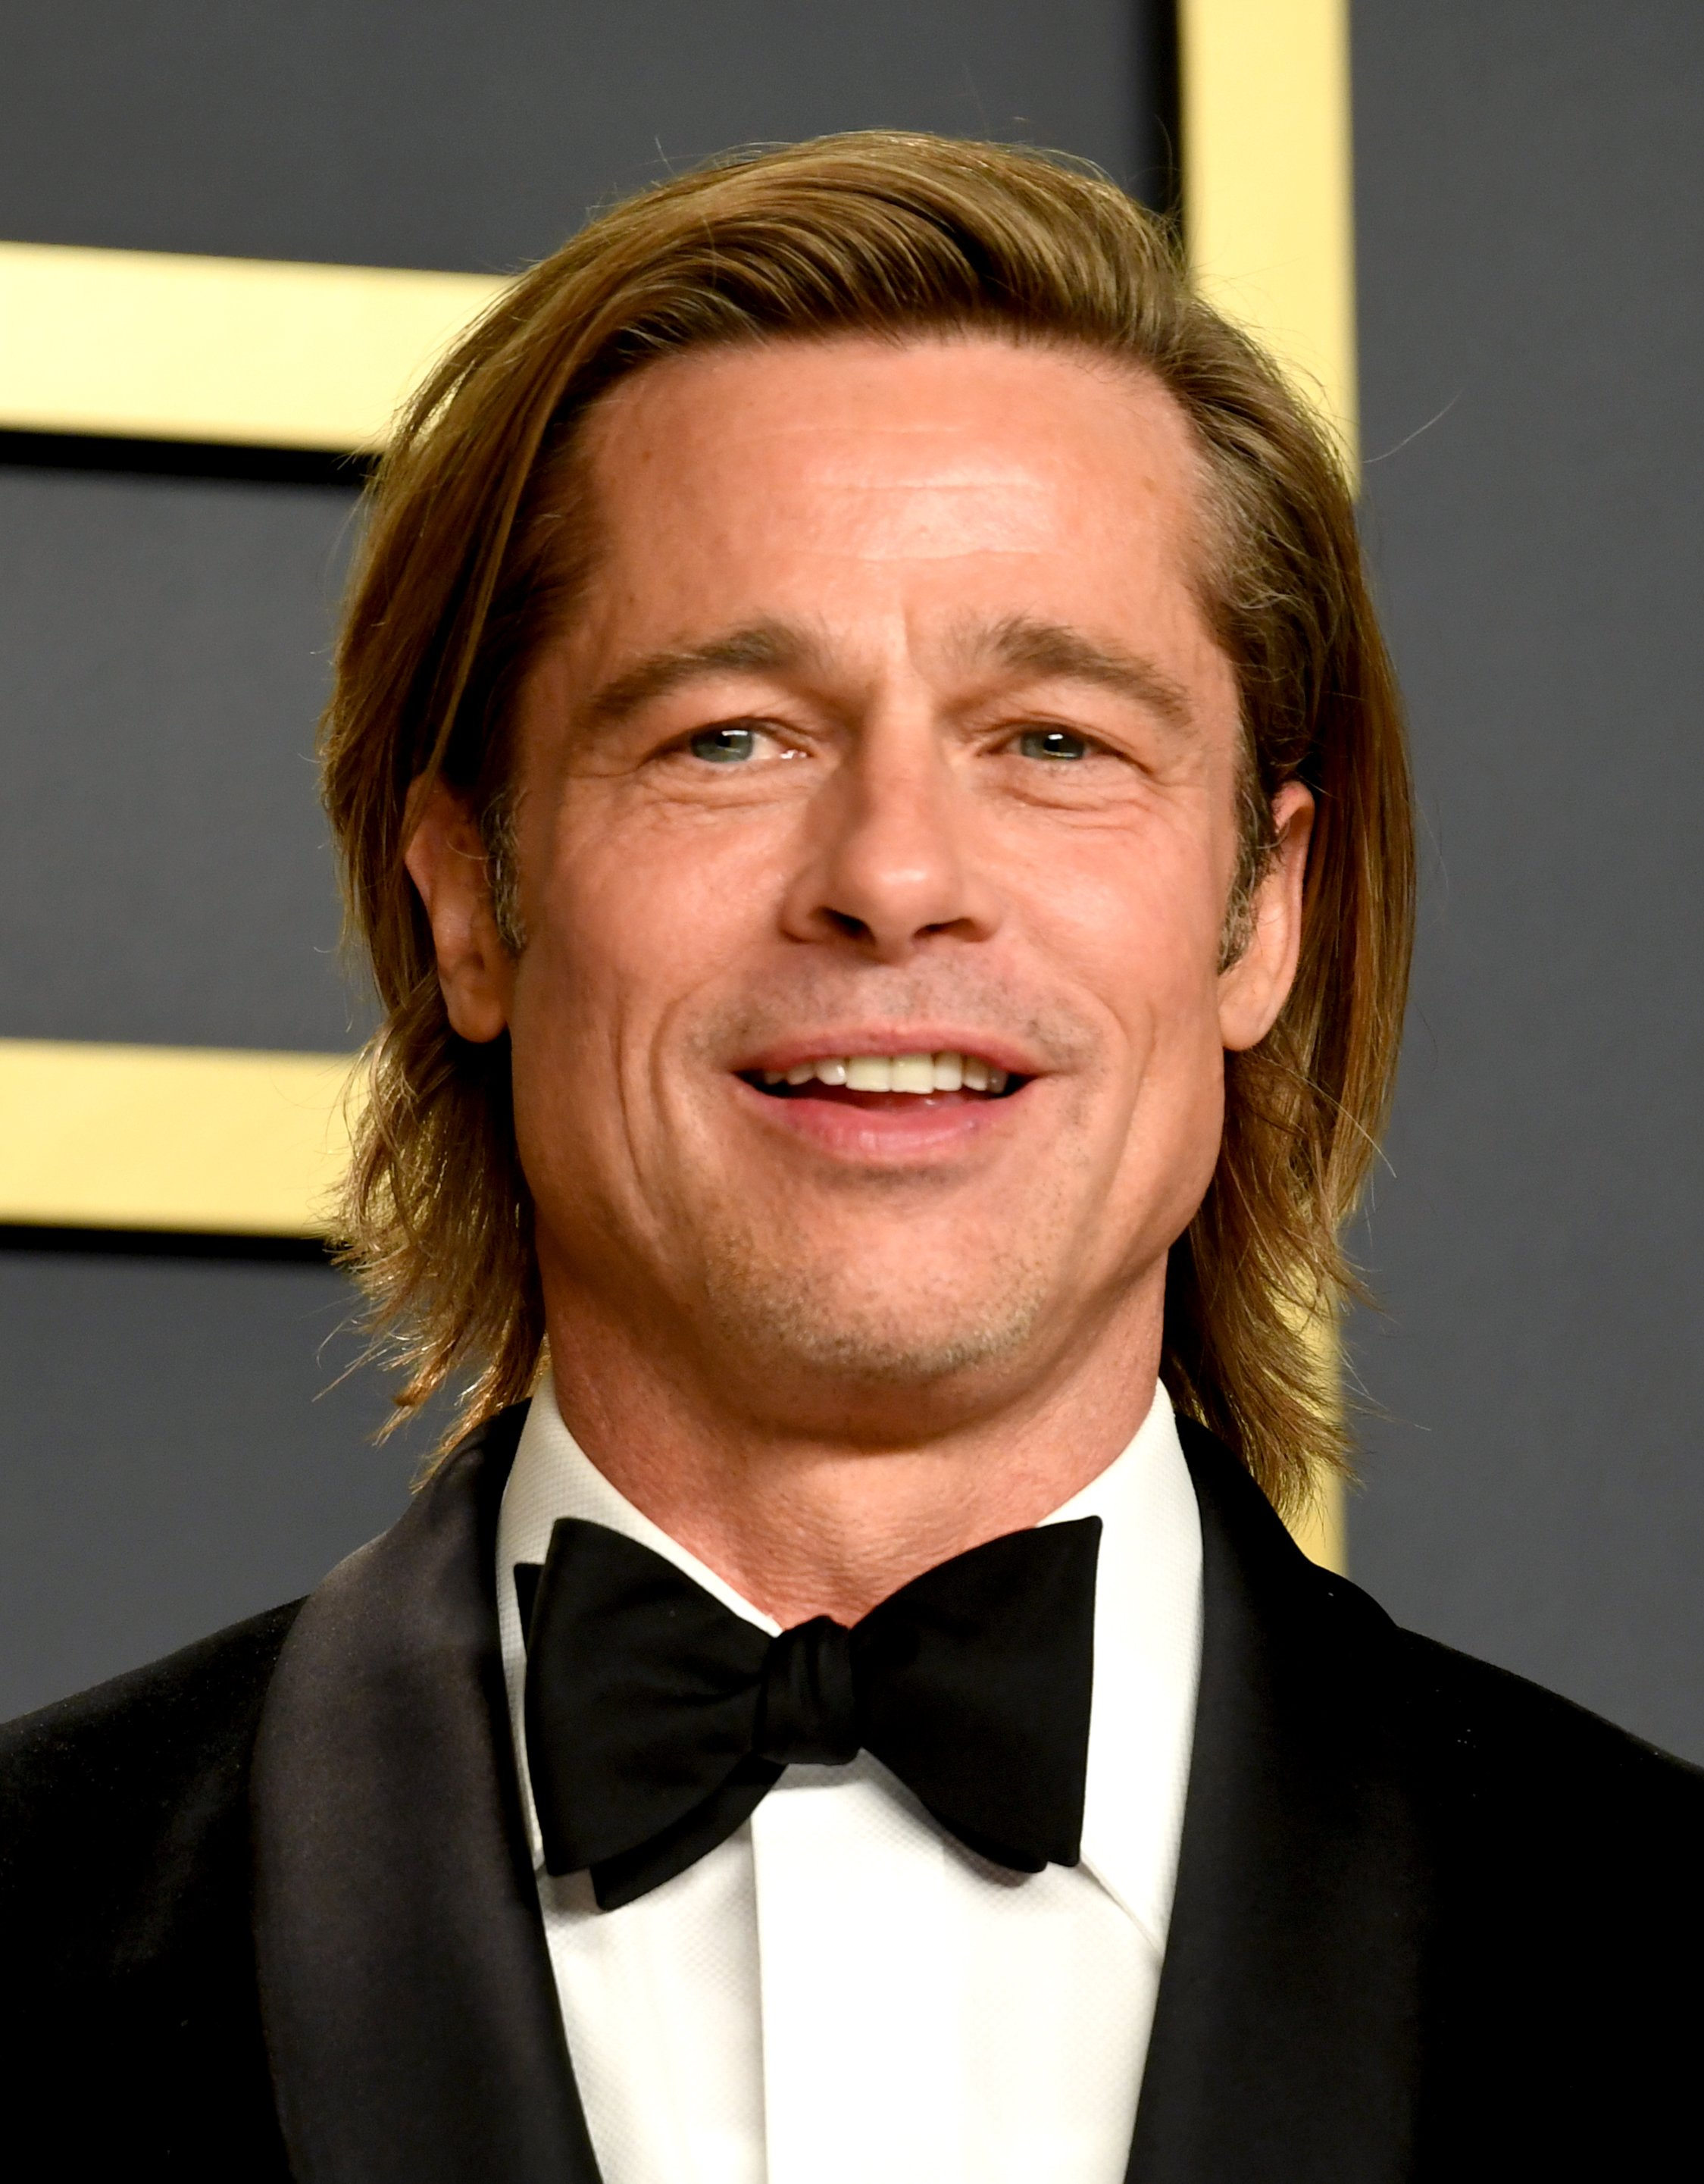 Brad Pitt in the press room at the 92nd Academy Awards held at the Dolby Theatre in Hollywood, Los Angeles, USA   Photo: Getty Images